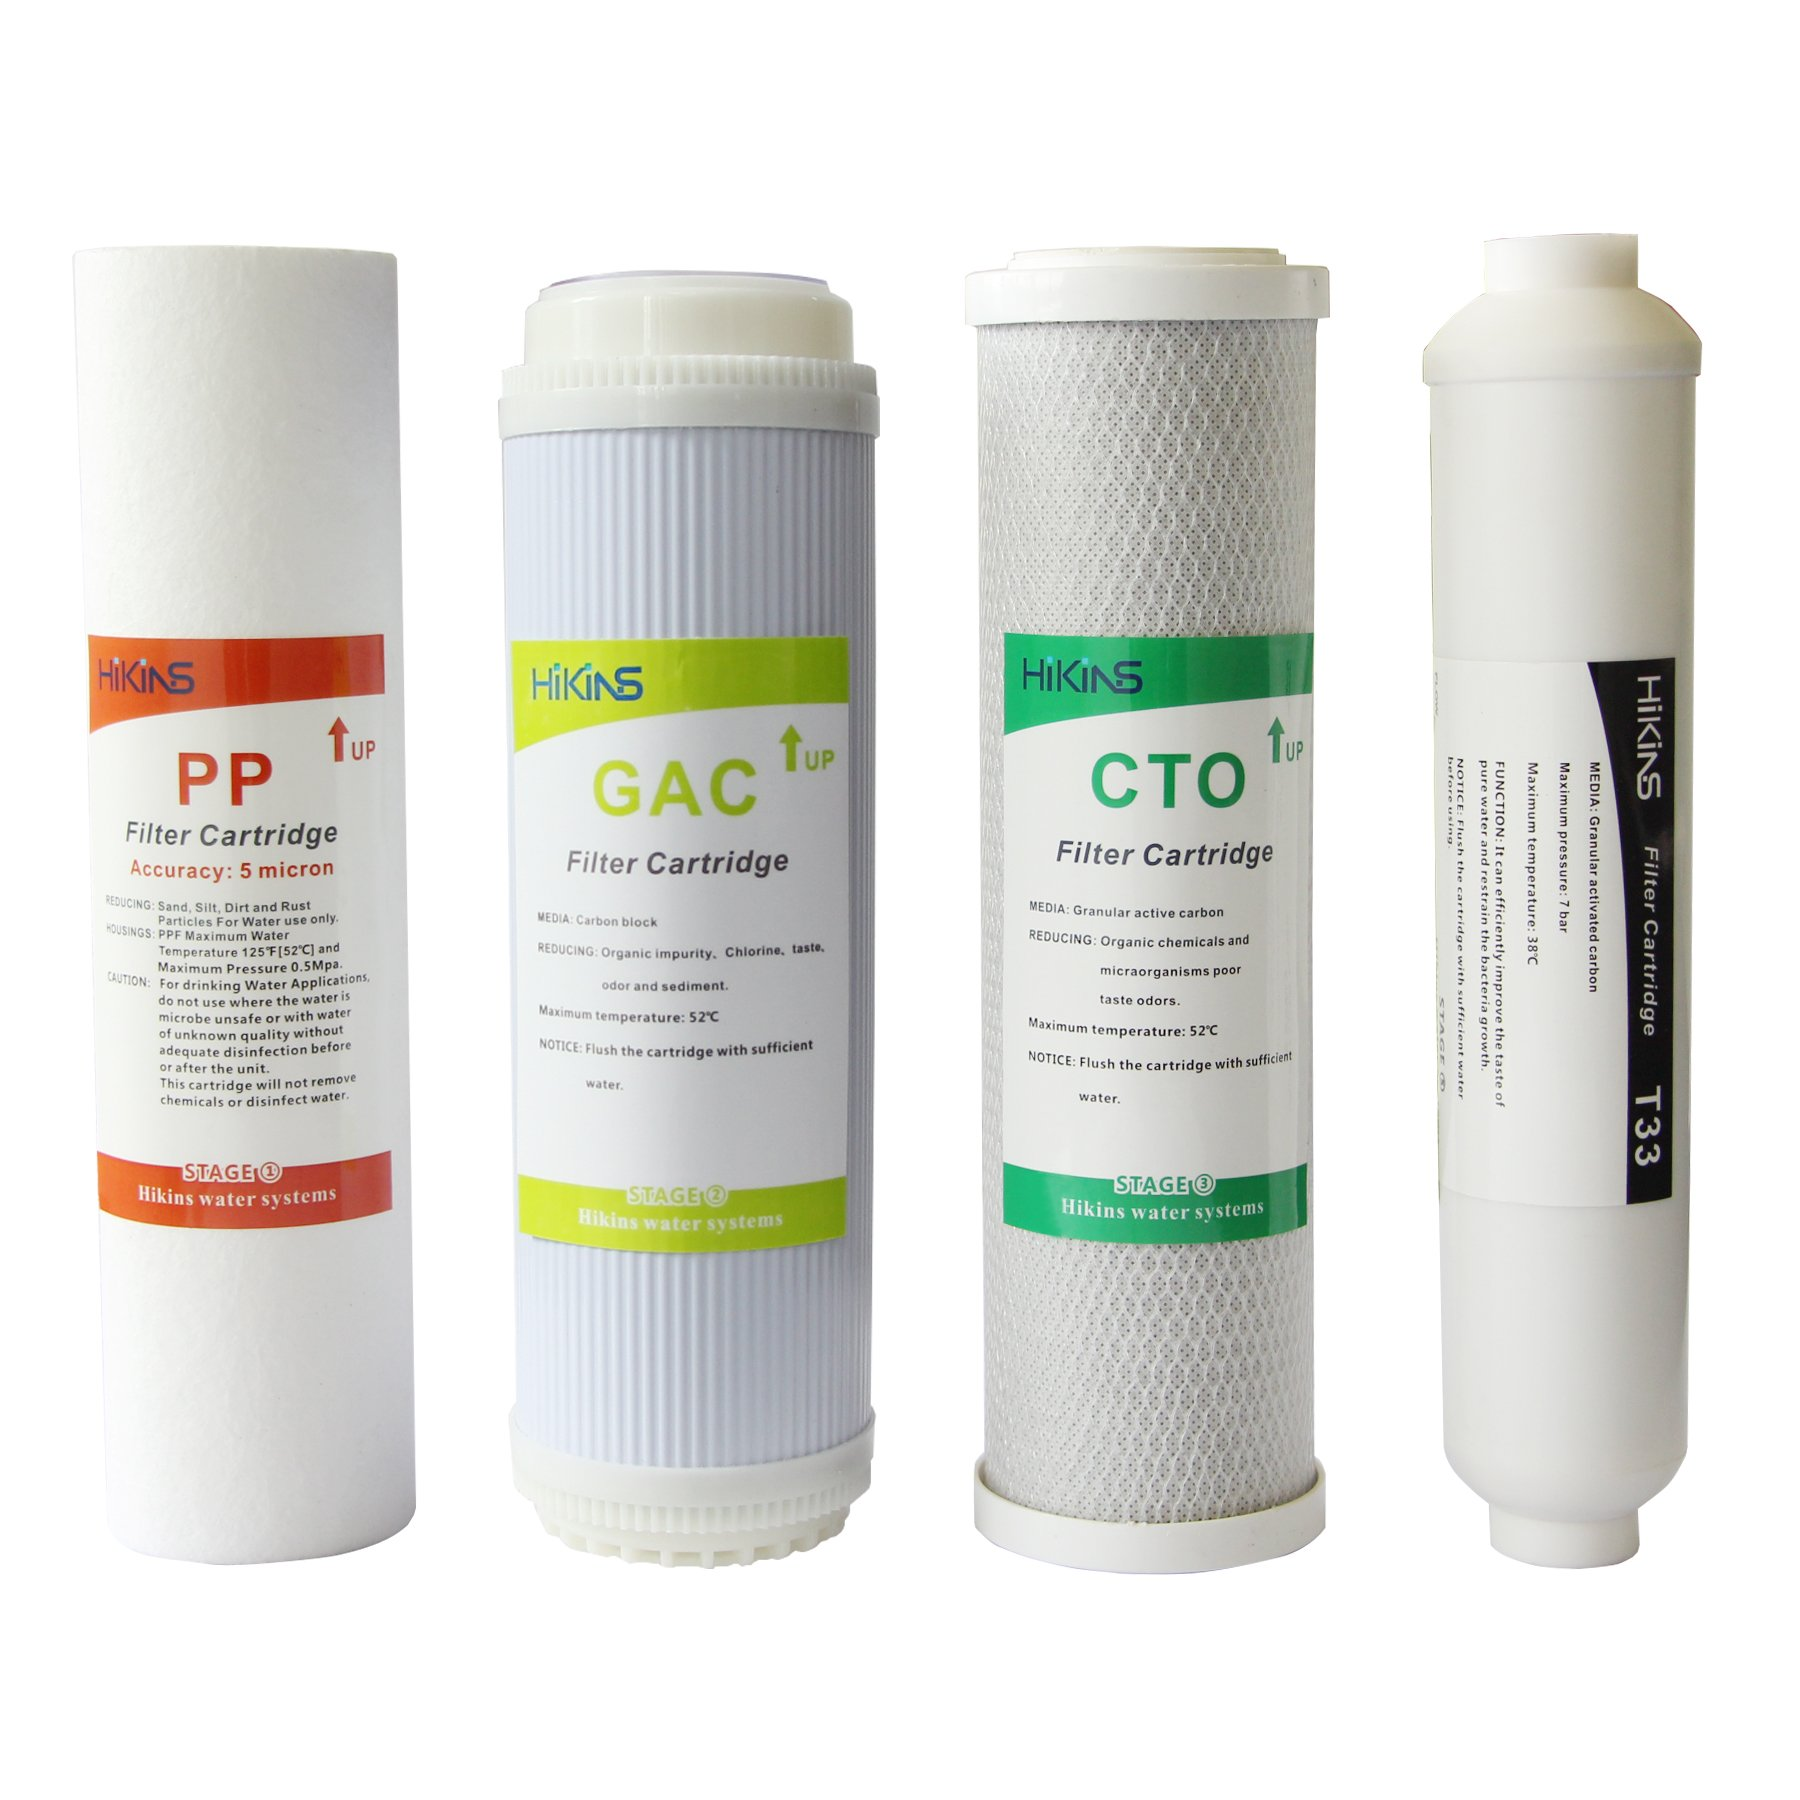 HiKiNS Reverse Osmosis Filter Replacement Set for Universal 5-Stage RO Water Systems with 10-in PP Sediment, GAC,CTO and T33 Post Carbon (4-Pack NO Membrane)